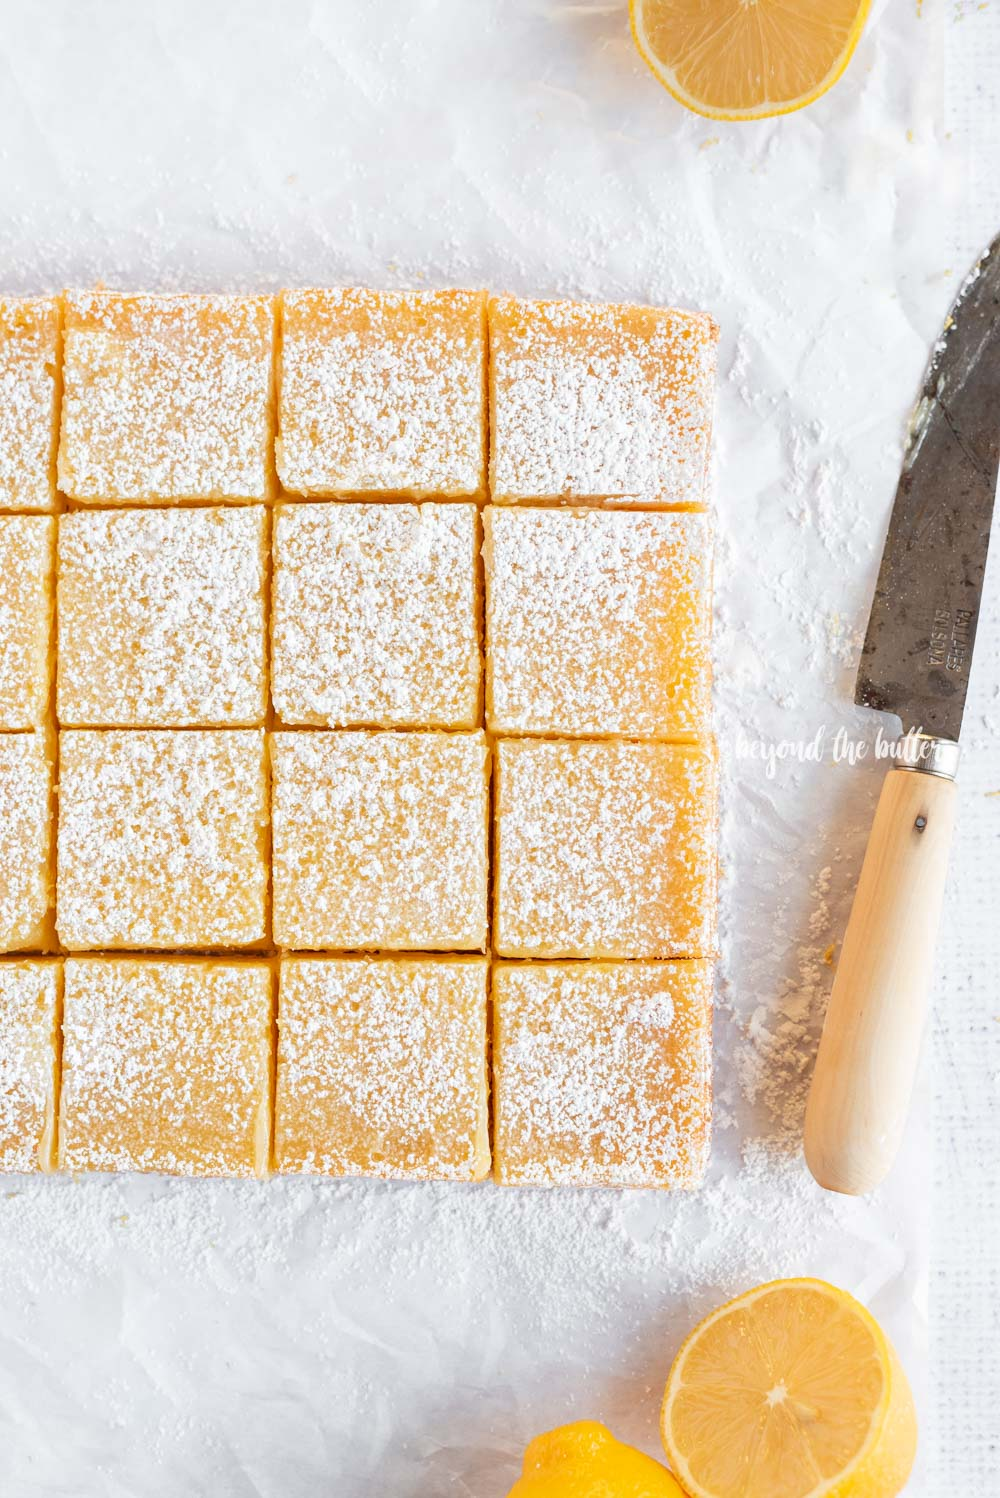 Overhead image of just sliced lemon bars with knife | All Images © Beyond the Butter, LLC